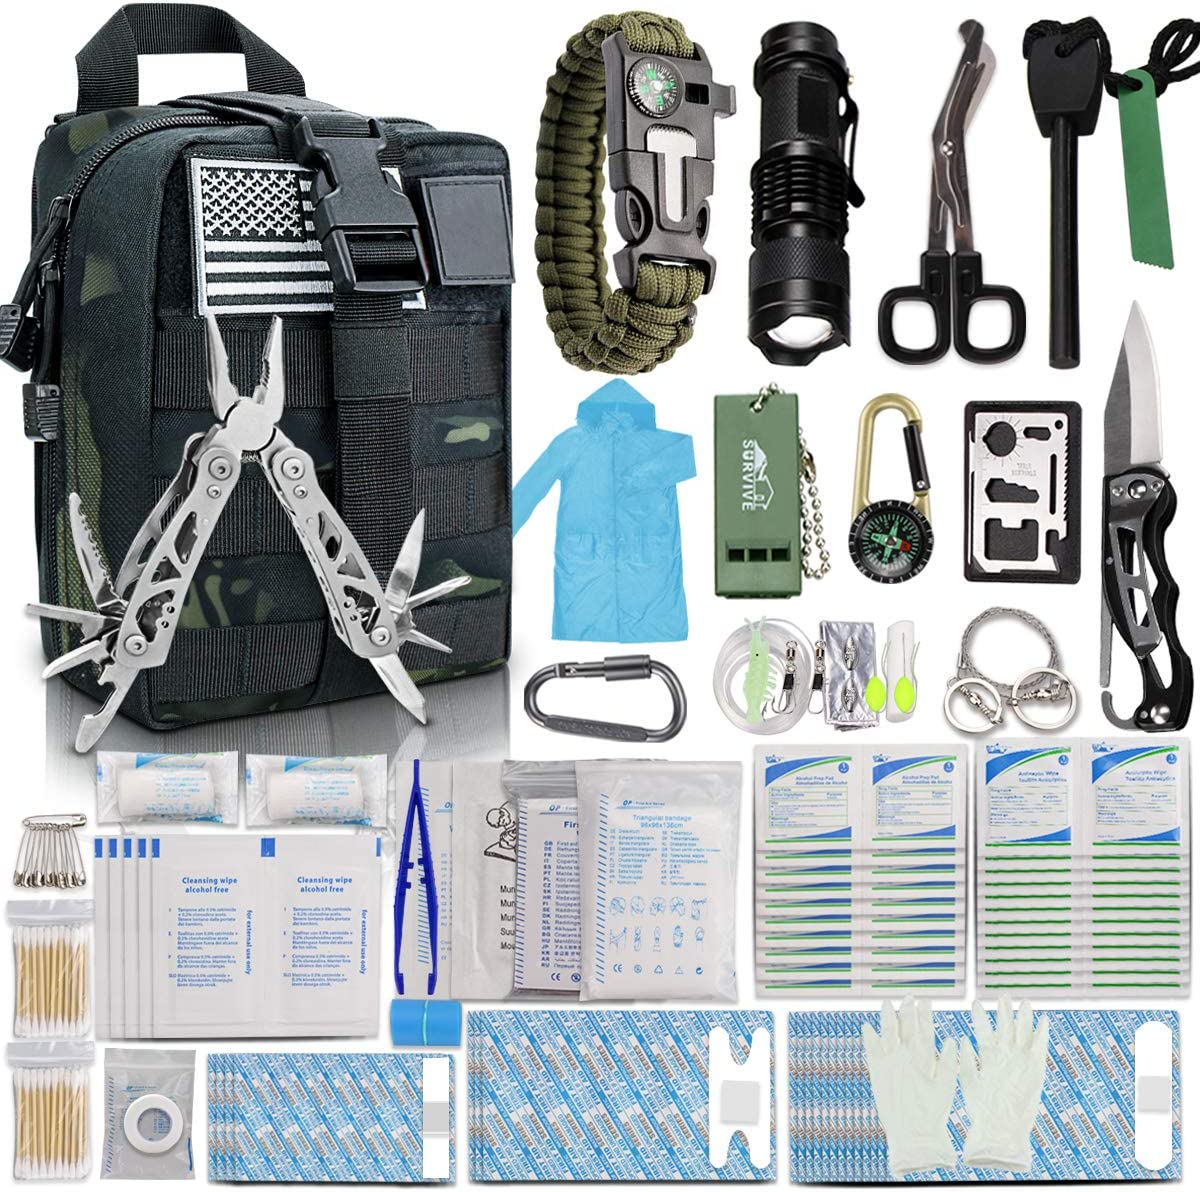 Monoki First Aid Survival Kit, 302Pcs Tactical Molle EMT IFAK Pouch Outdoor Gear EDC Emergency Survival Kits First Aid Kit Trauma Bag for Hiking Camping Hunting Car Travel or Adventures : Sports & Outdoors